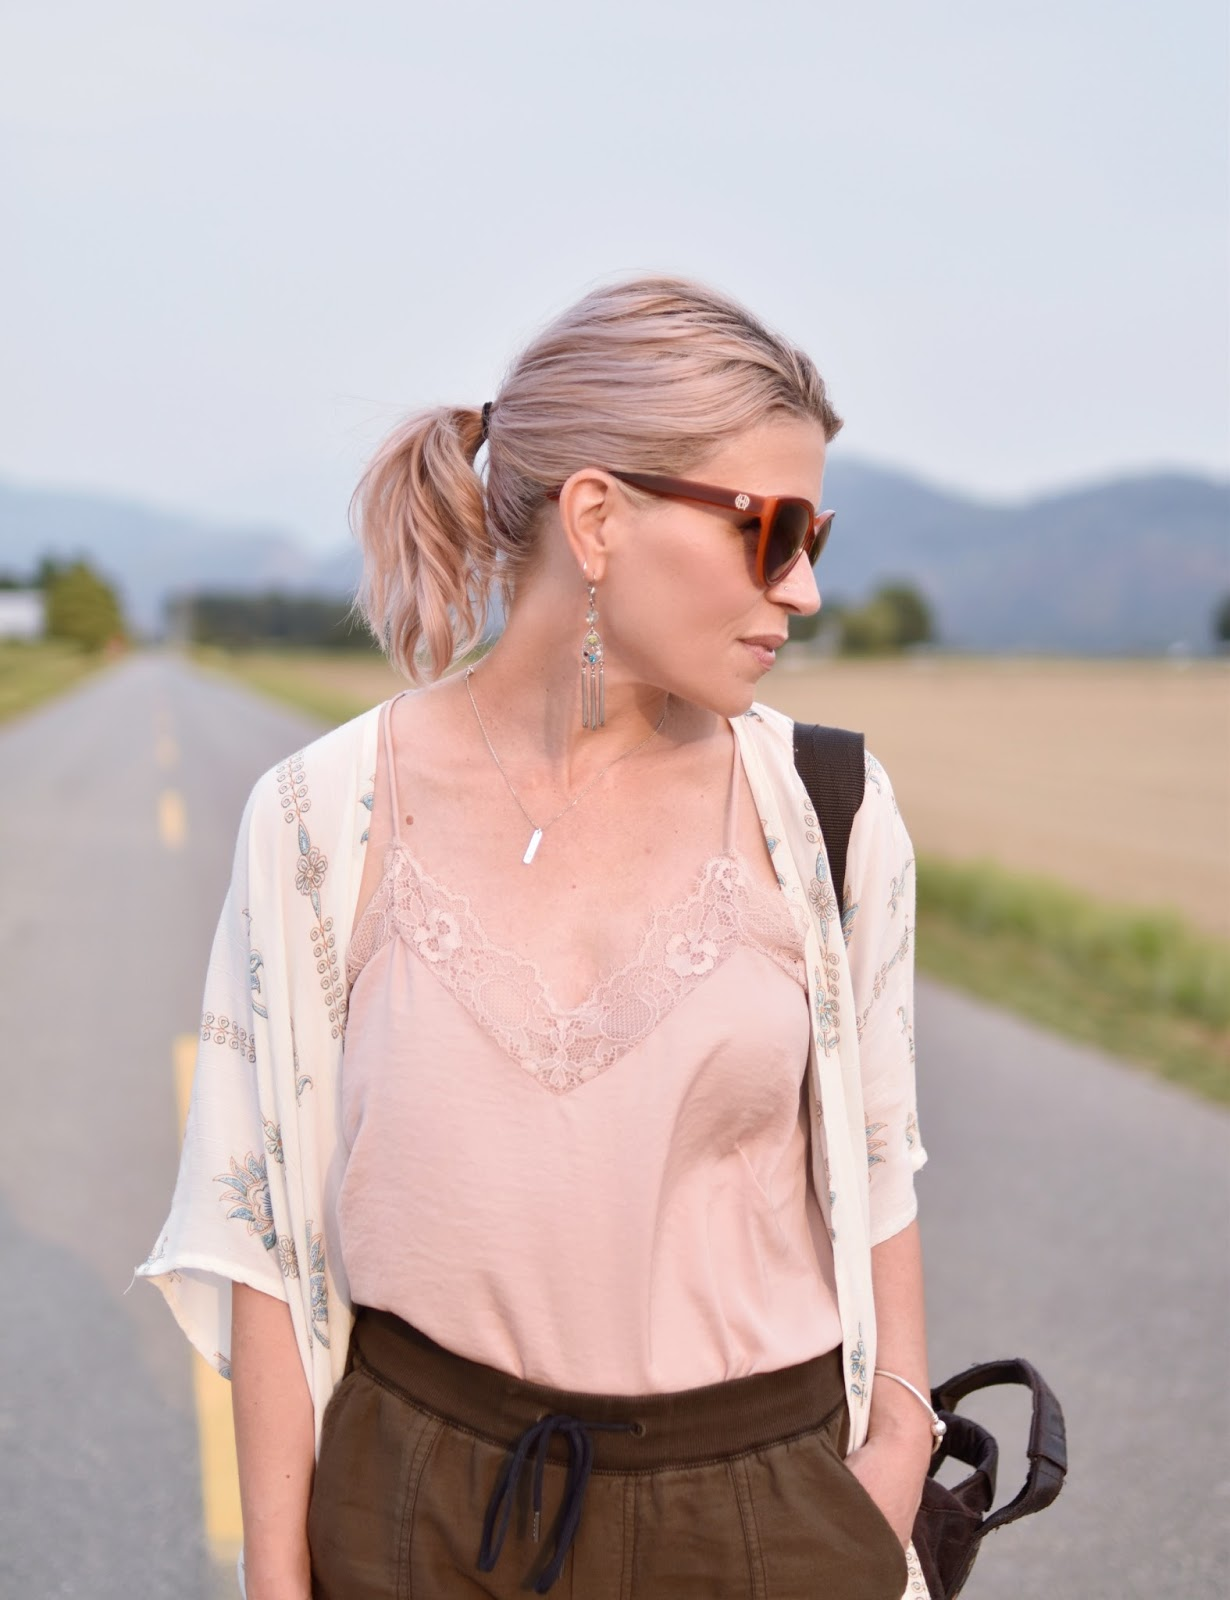 Monika Faulkner outfit inspiration - pink lace-trimmed camisole, white damask-patterned kimono, orange sunglasses